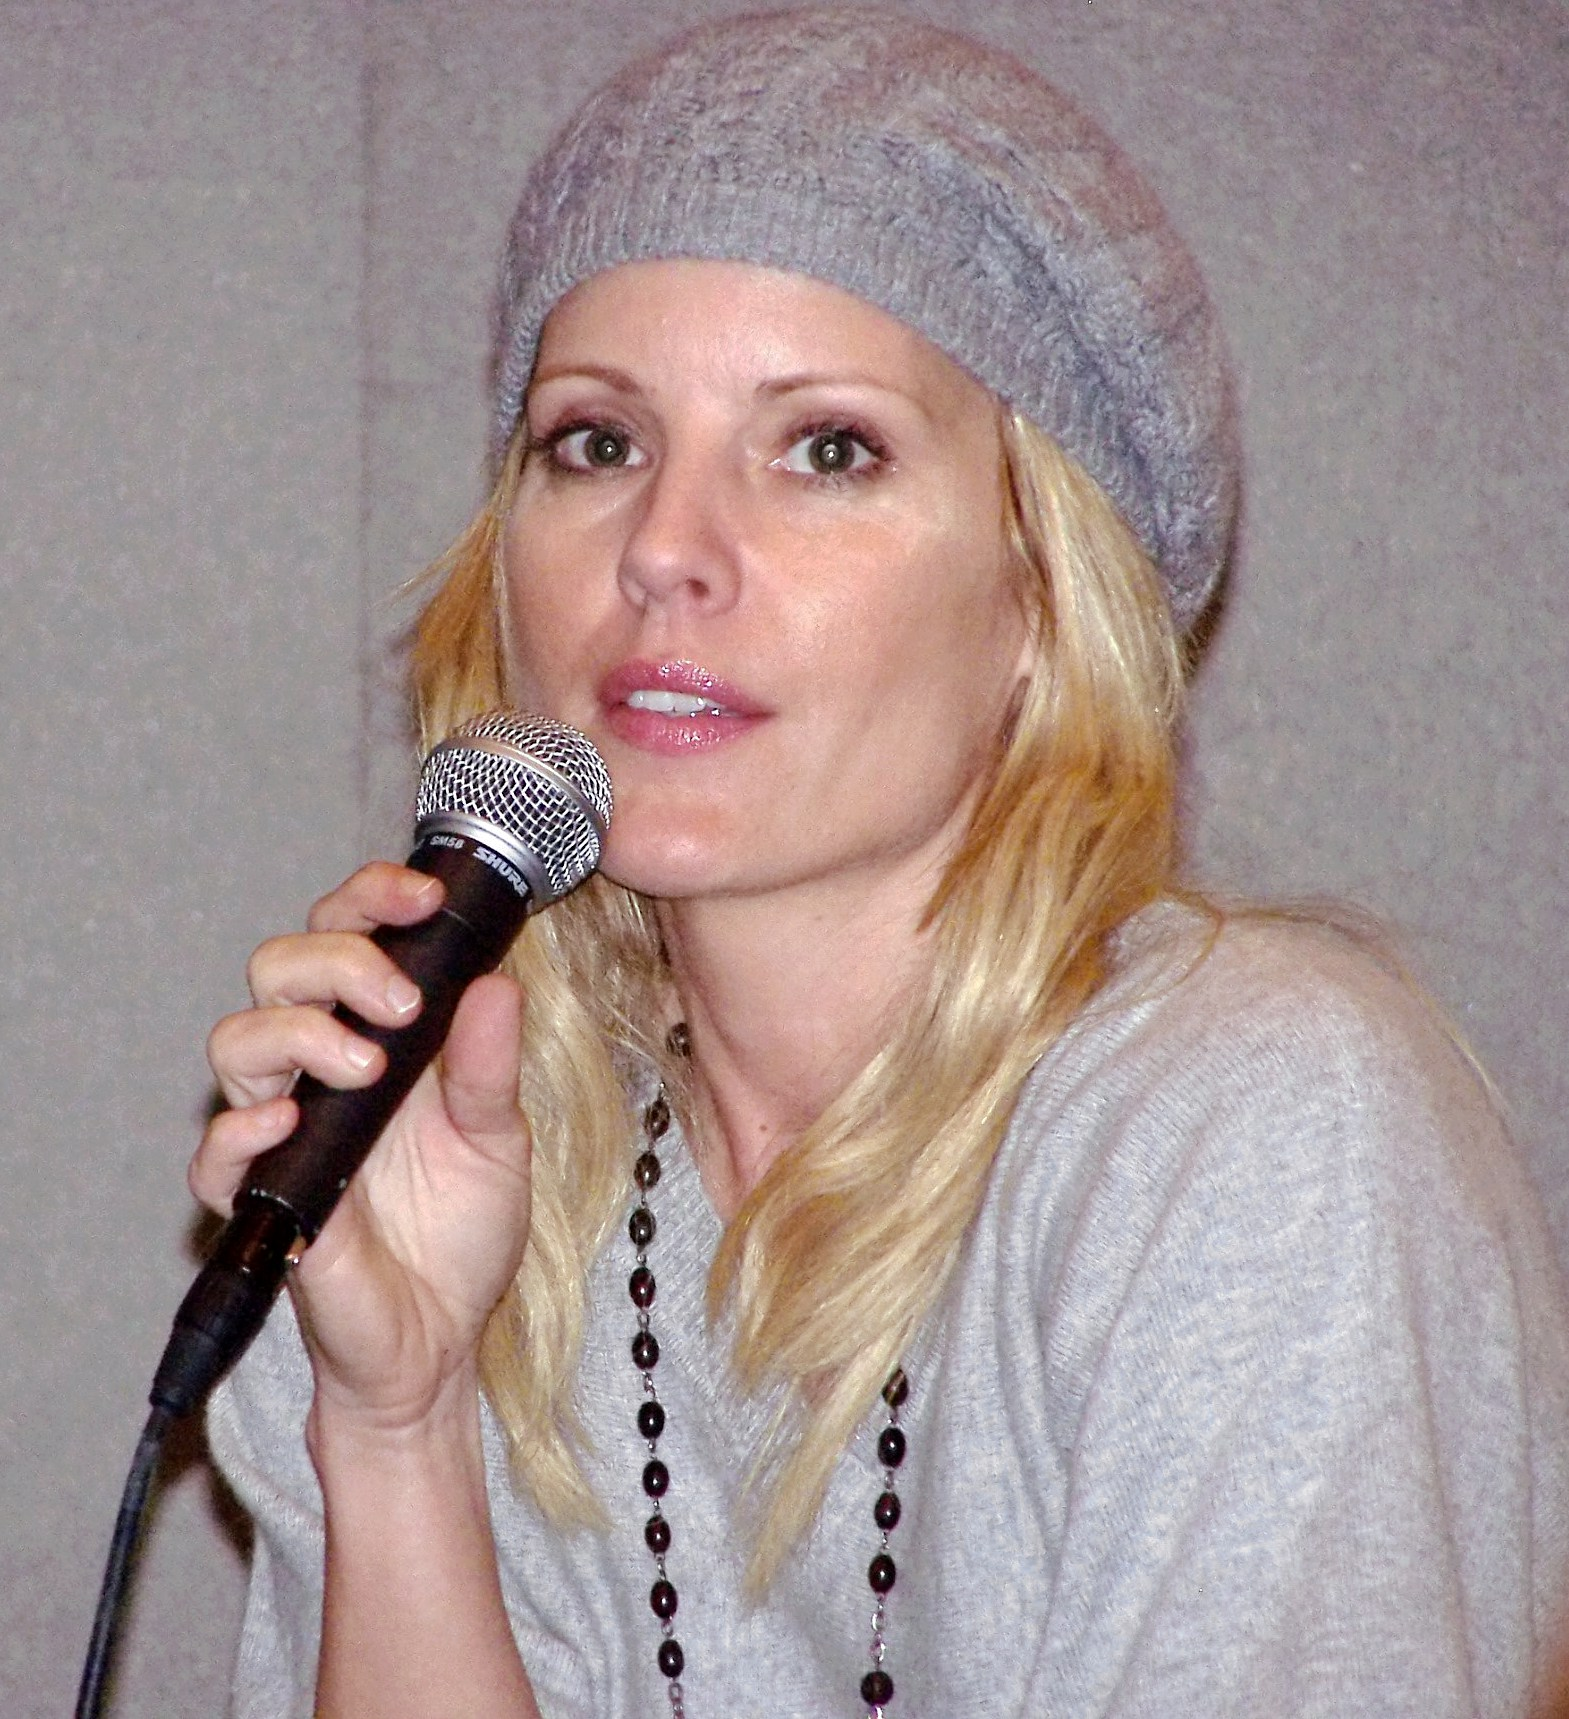 The 45-year old daughter of father (?) and mother(?) Emma Caulfield in 2018 photo. Emma Caulfield earned a  million dollar salary - leaving the net worth at 3 million in 2018